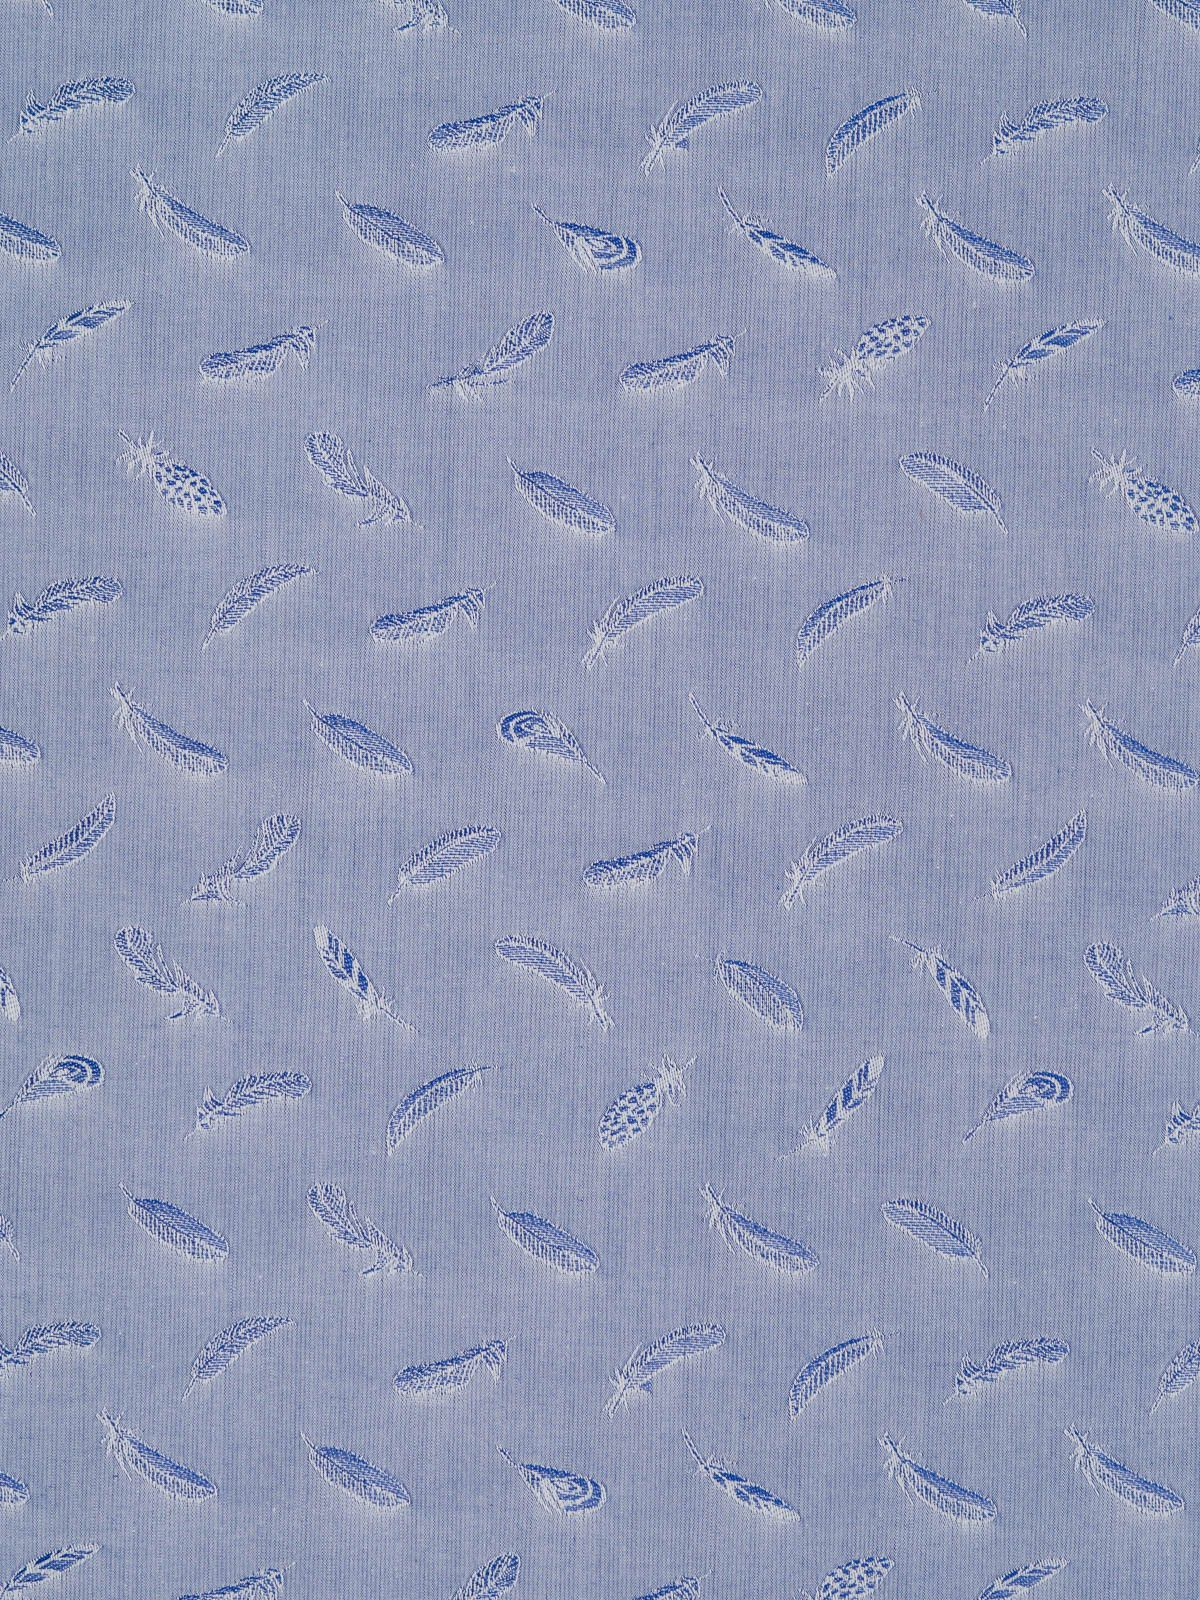 Feather Pattern Sky Blue High Thread Count Cotton Fabric Fabworks Online